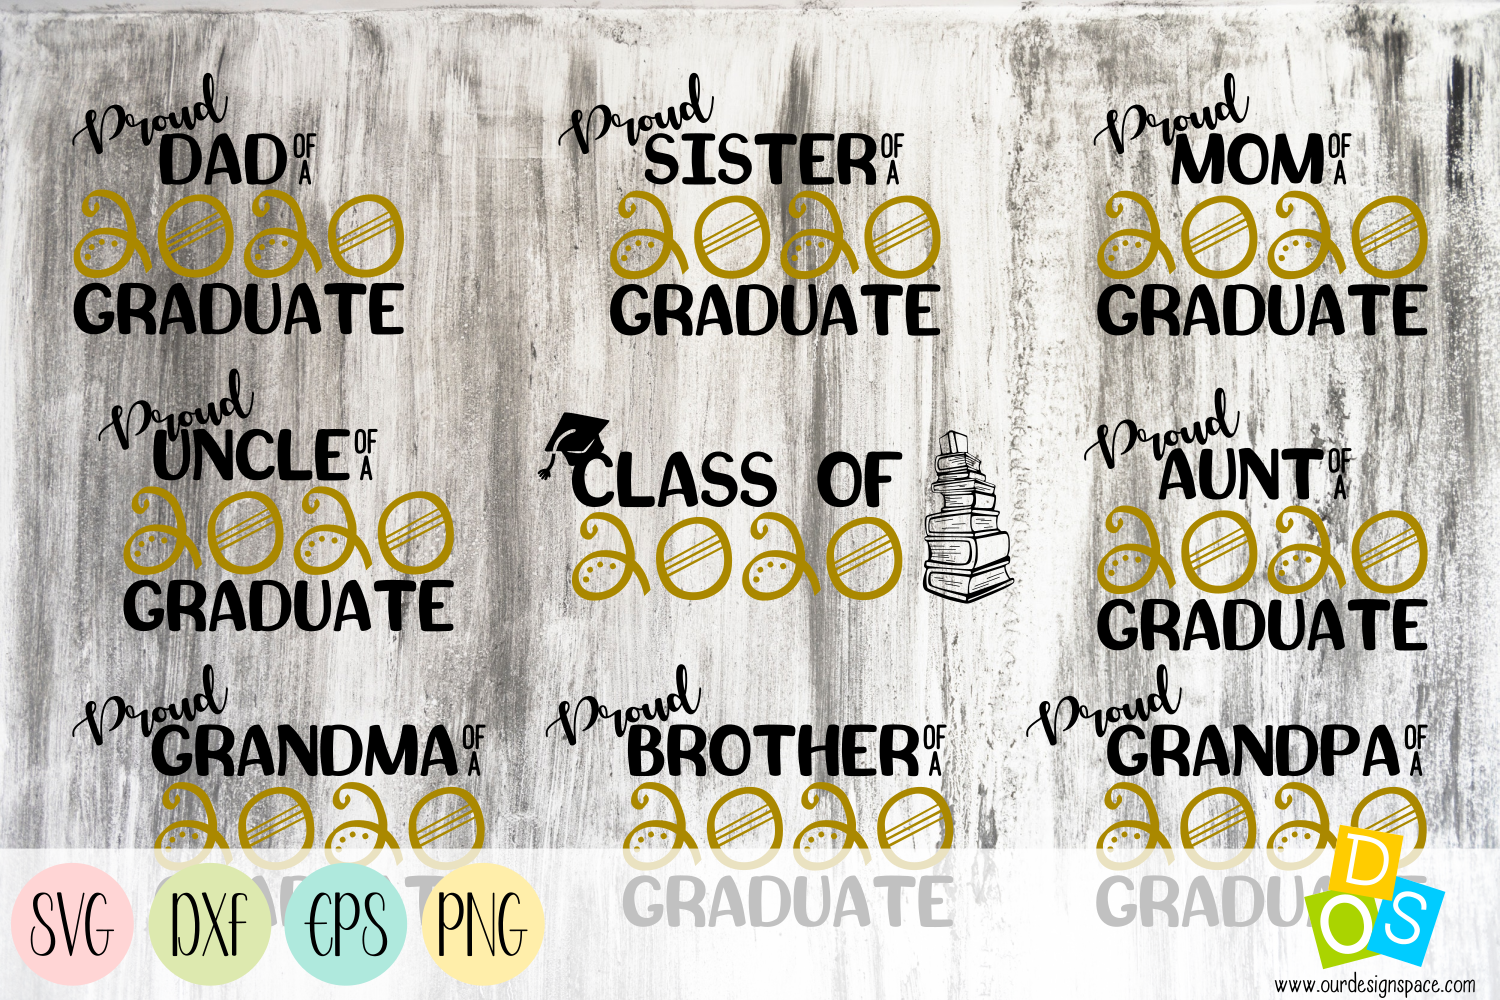 Class OF 2020 SVG, DXF, EPS and PNG